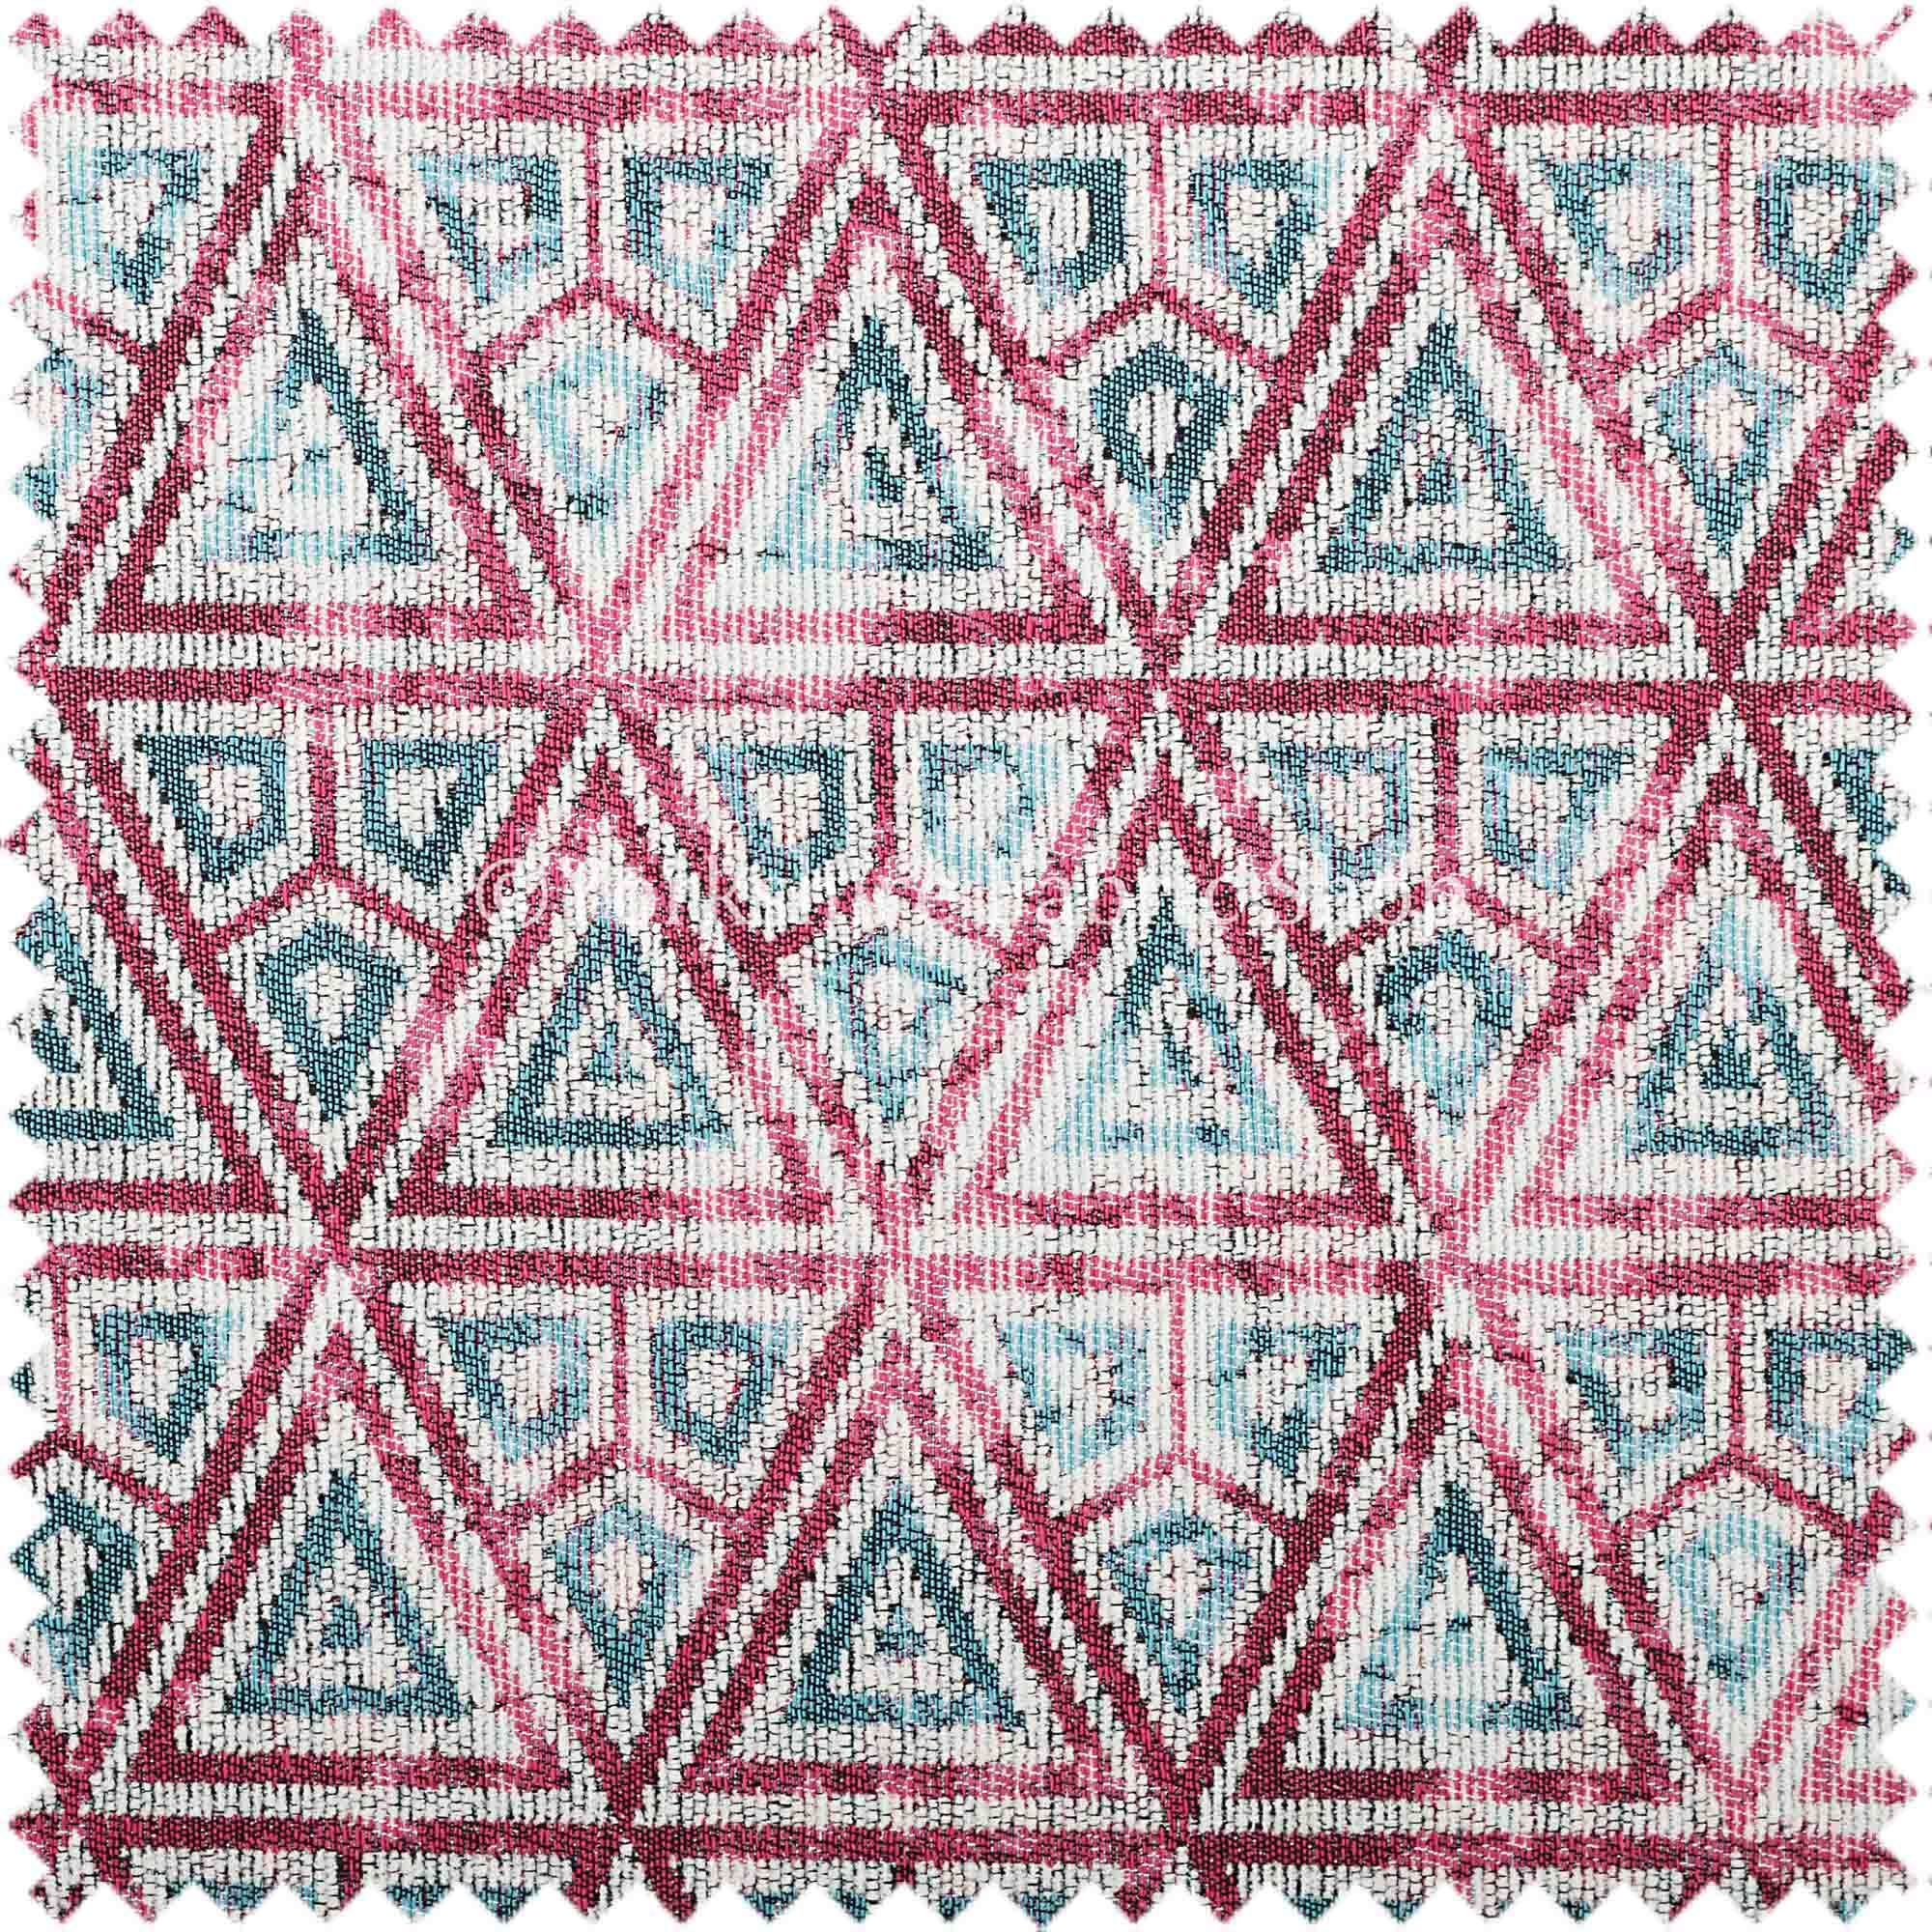 Pink White Blue Balanced Shapes Design Soft Chenille Upholstery Fabric JO 225